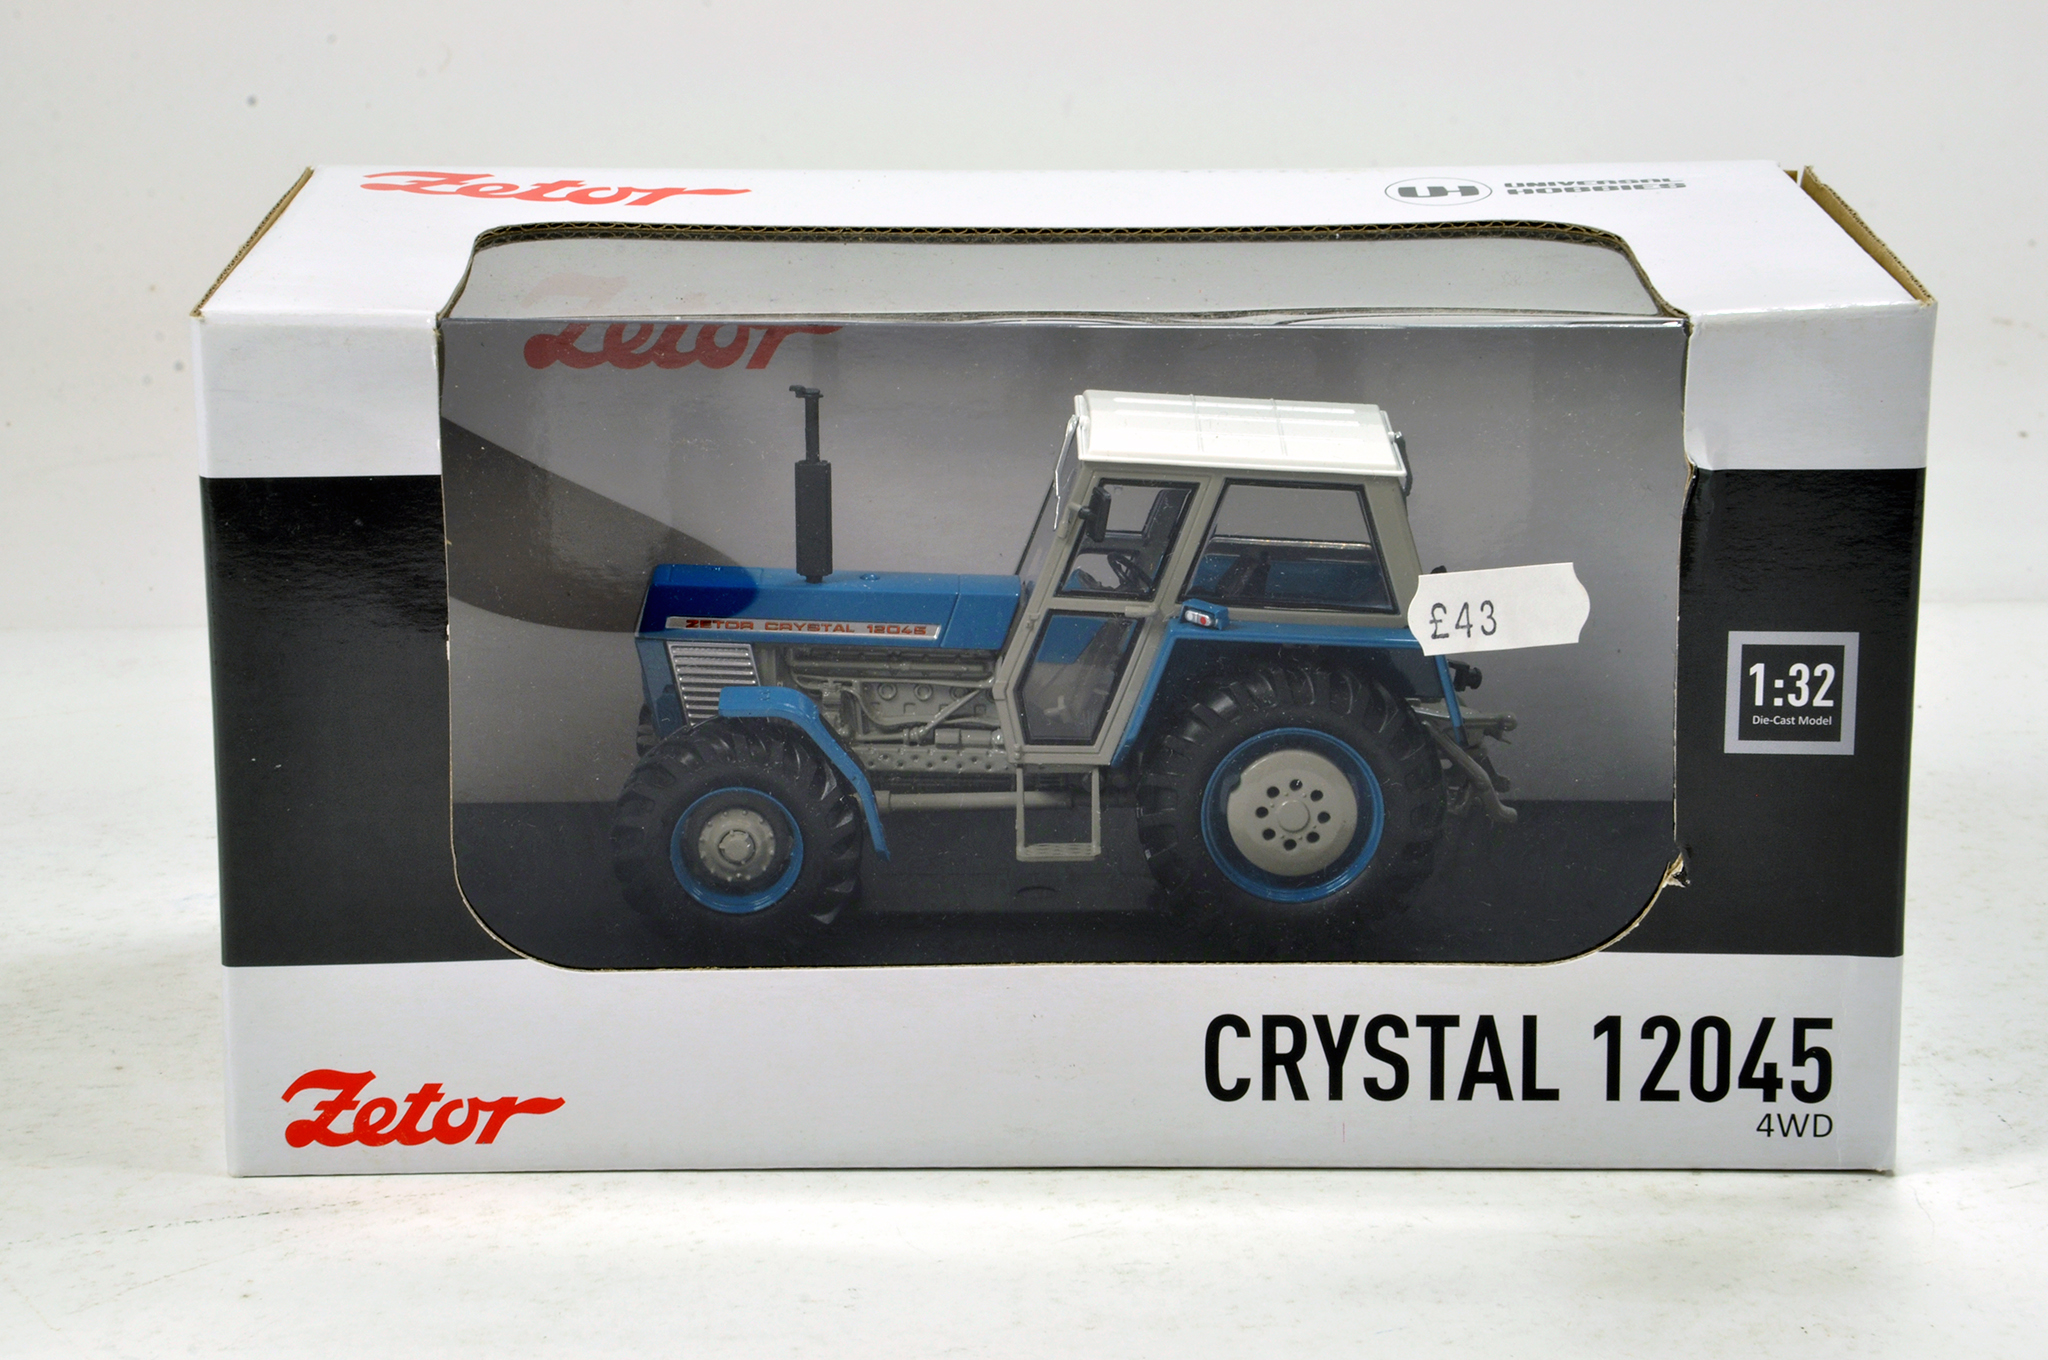 Lot 966 - Universal Hobbies 1/32 Zetor Crystal 12045 4WD Tractor in Blue. NM in Box.